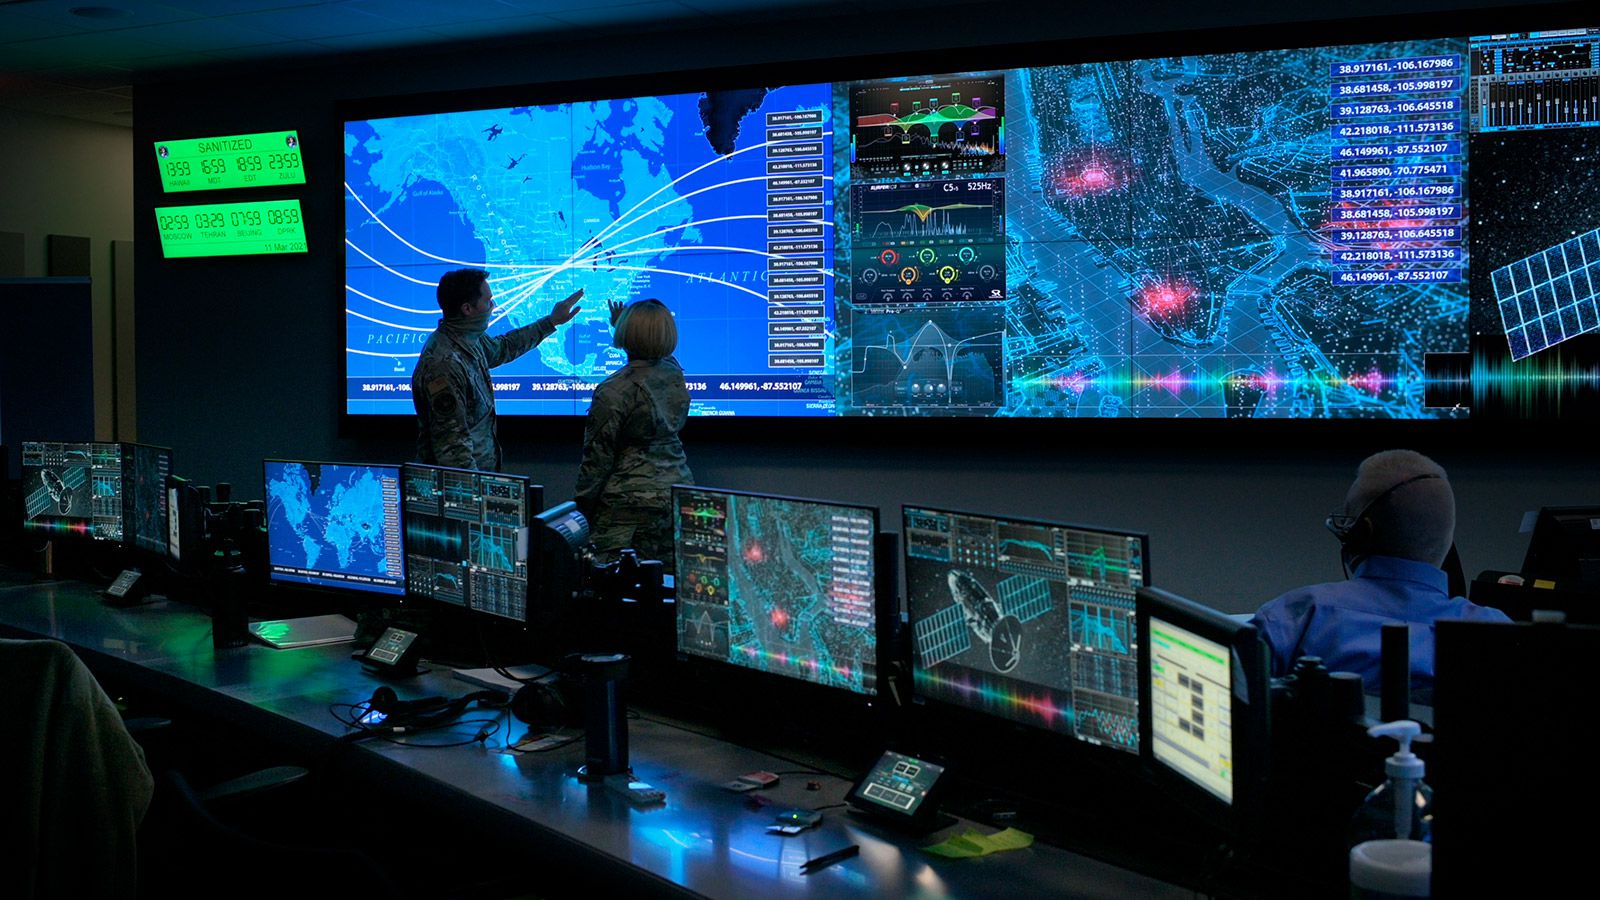 Space Command asks Congress for $67 million to achieve full operational capability